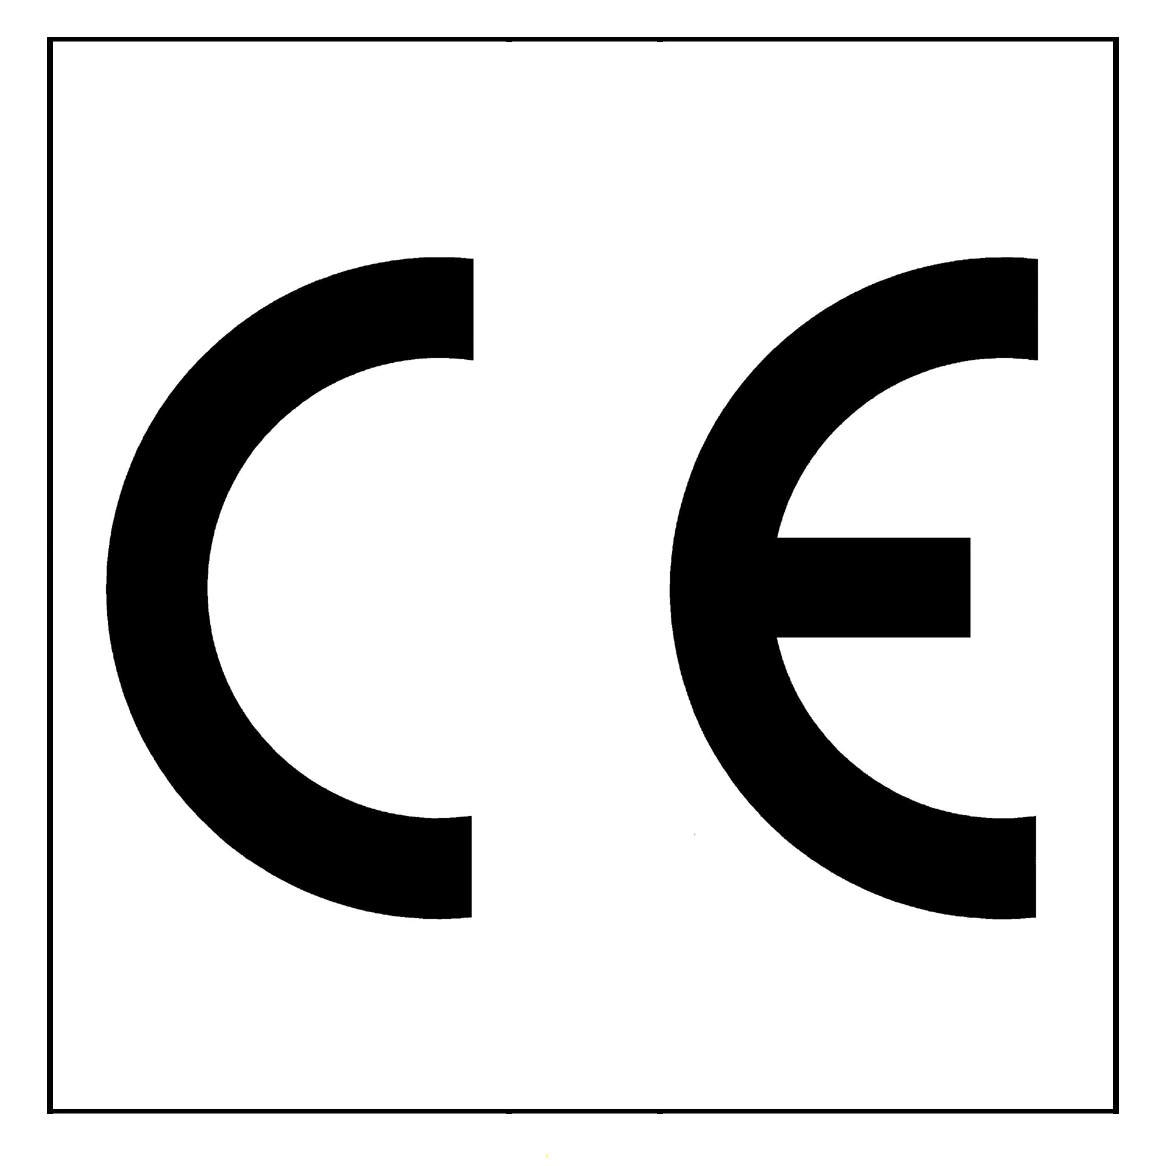 Download ce national logos • ce national.